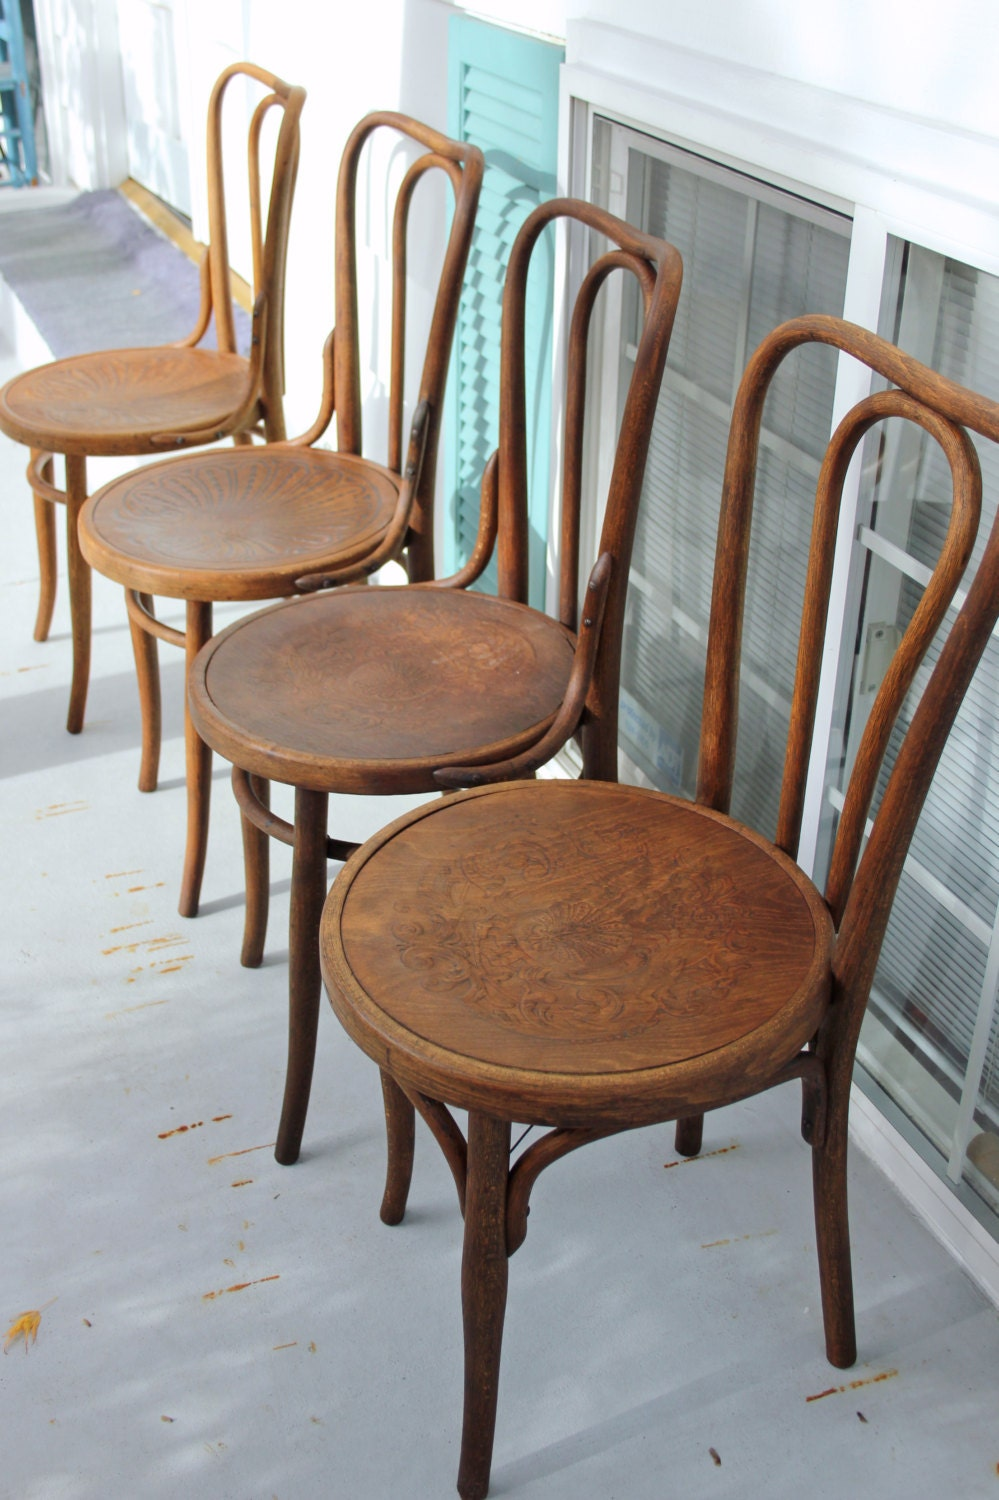 4 Antique Cafe Bistro Bentwood Thonet Chairs Modern Bohemian Dining Chairs